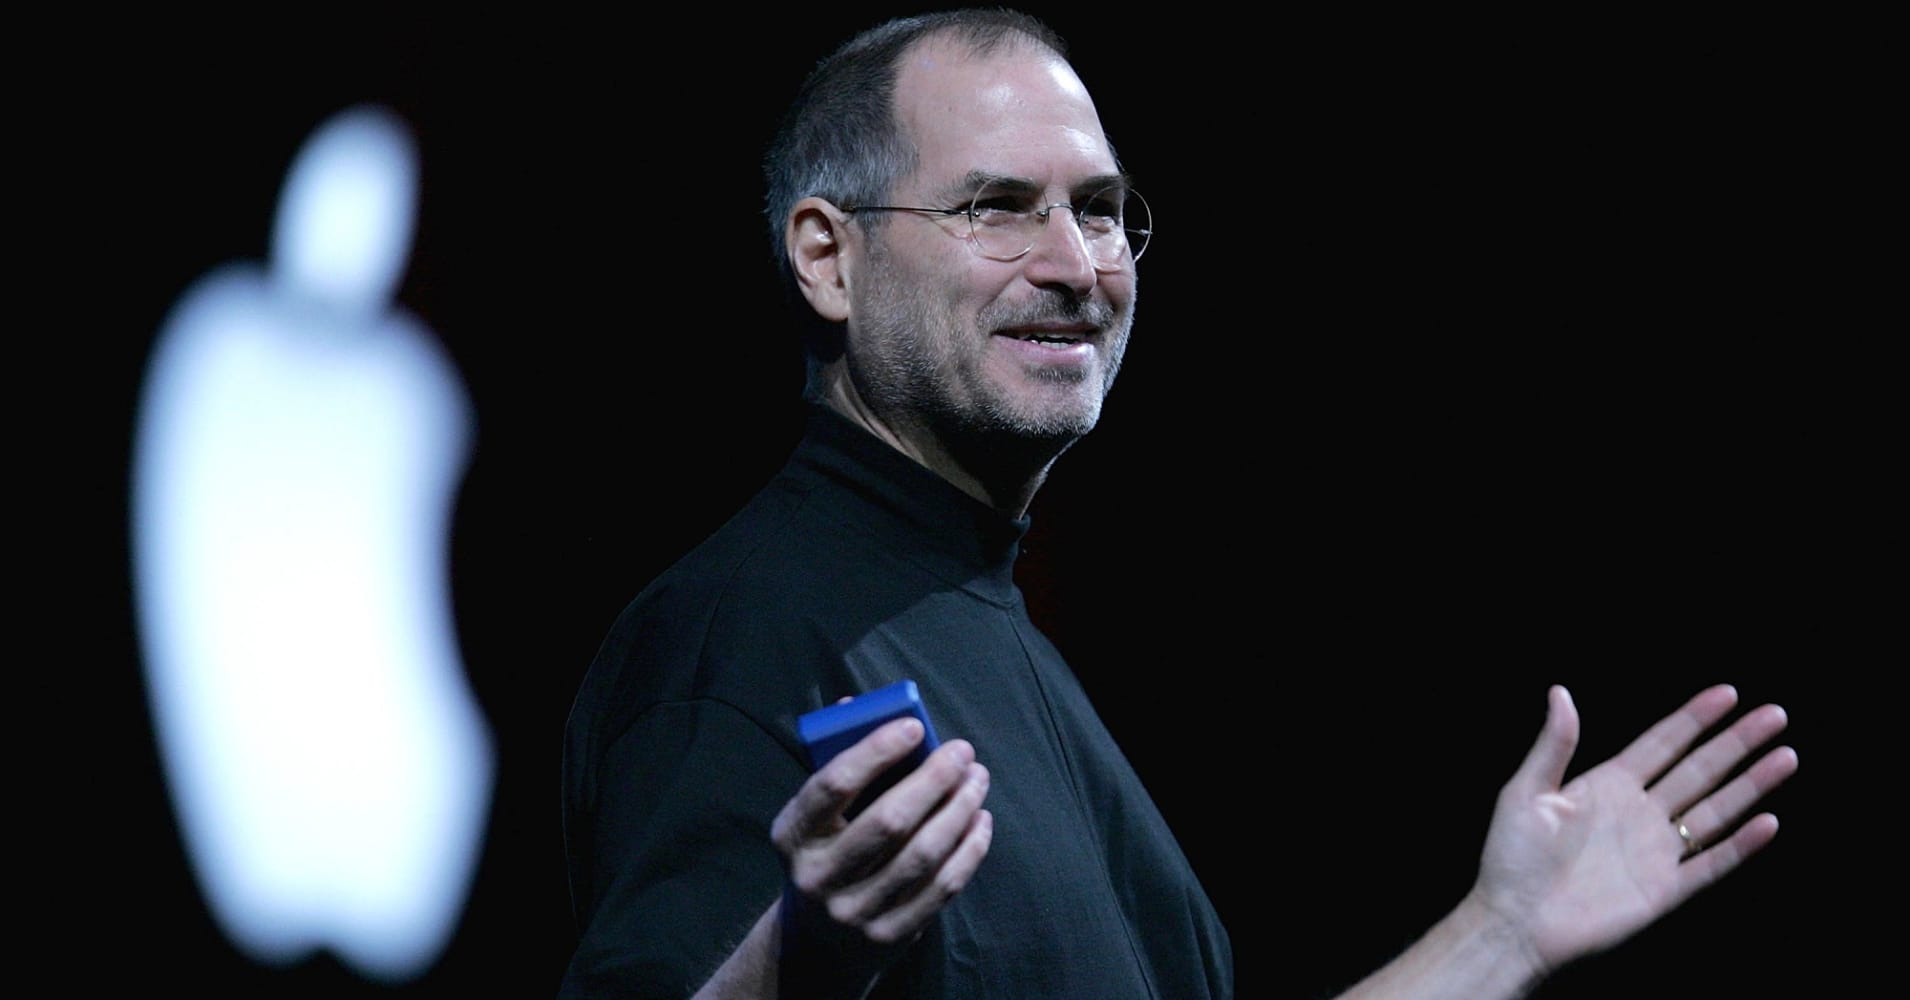 Apple CEO Steve Jobs delivers a keynote address at the 2005 Macworld Expo.